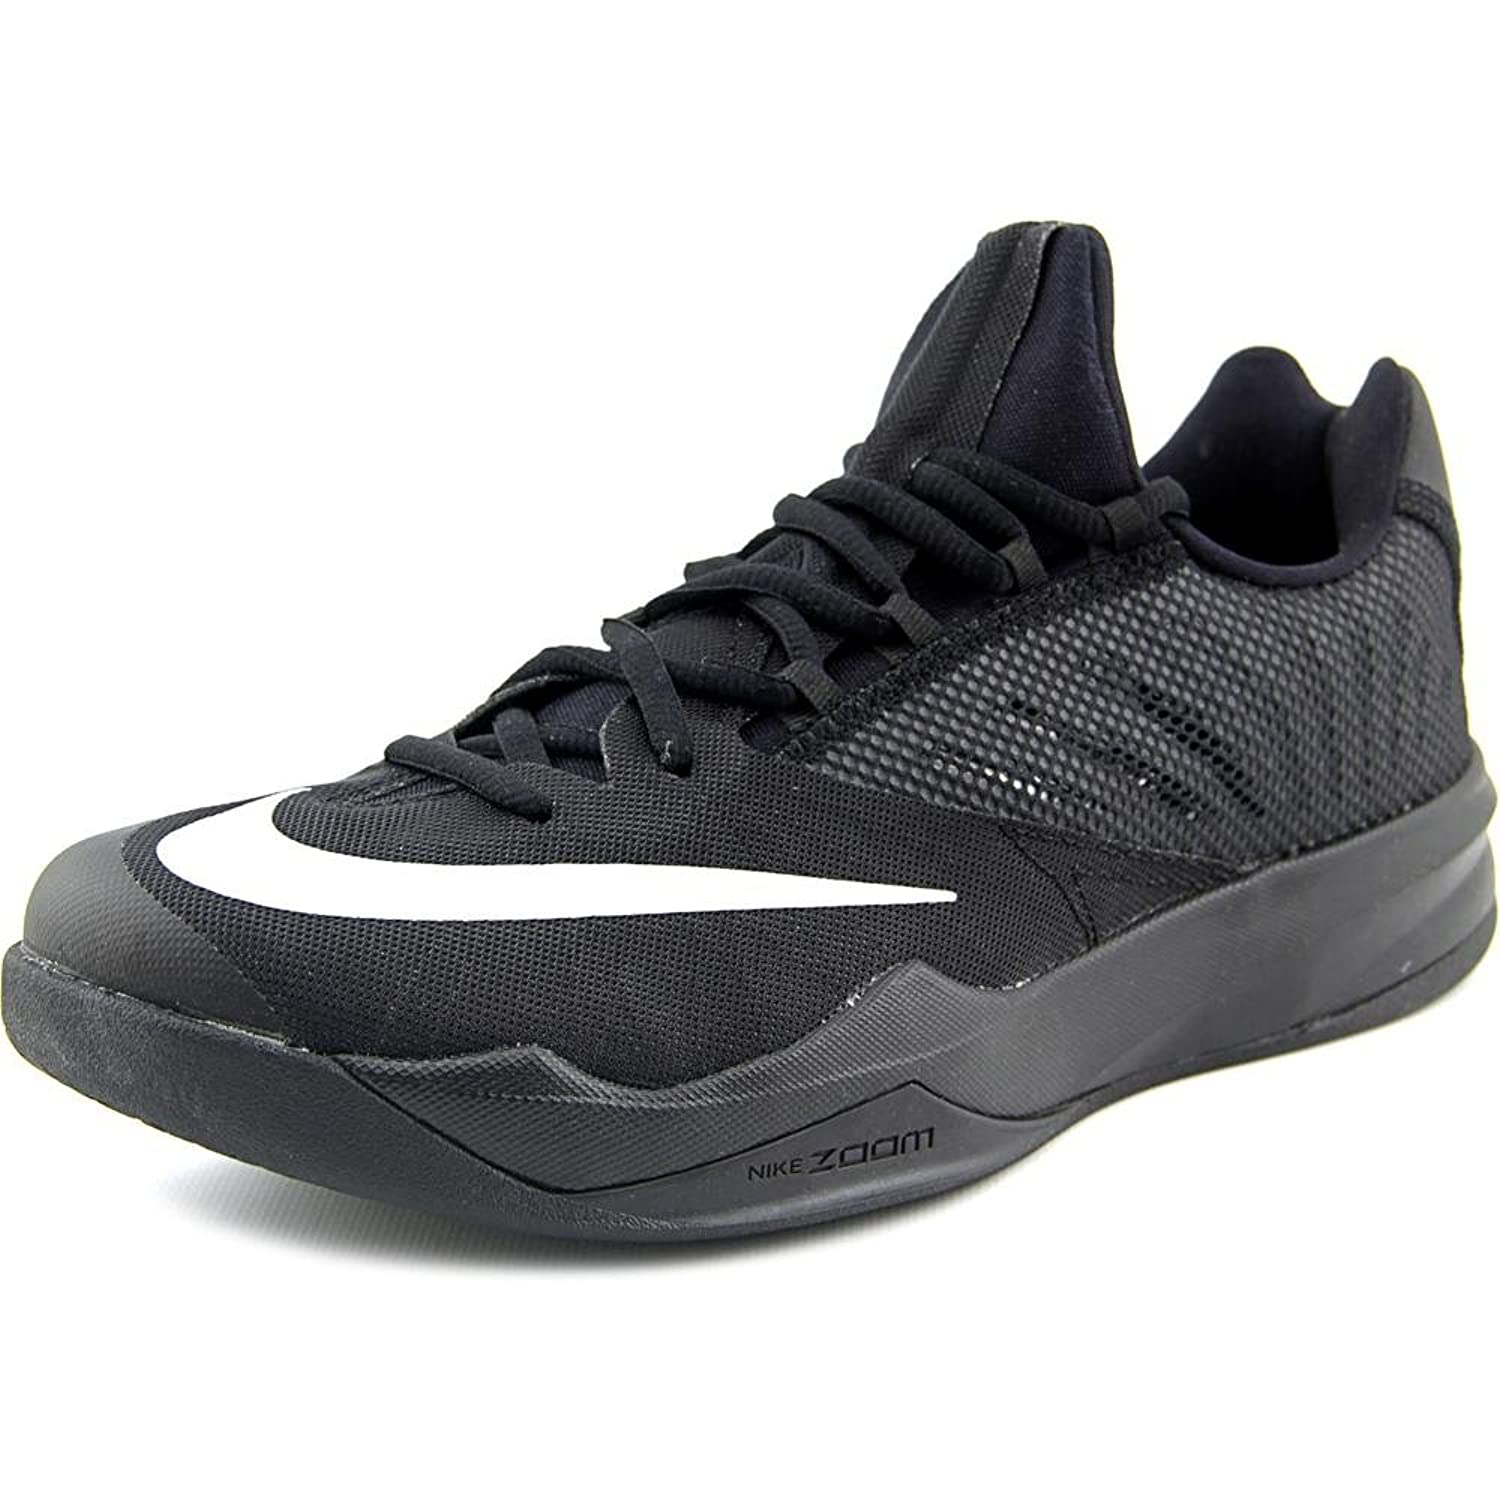 Nike Zoom Run The One Basketball Shoes